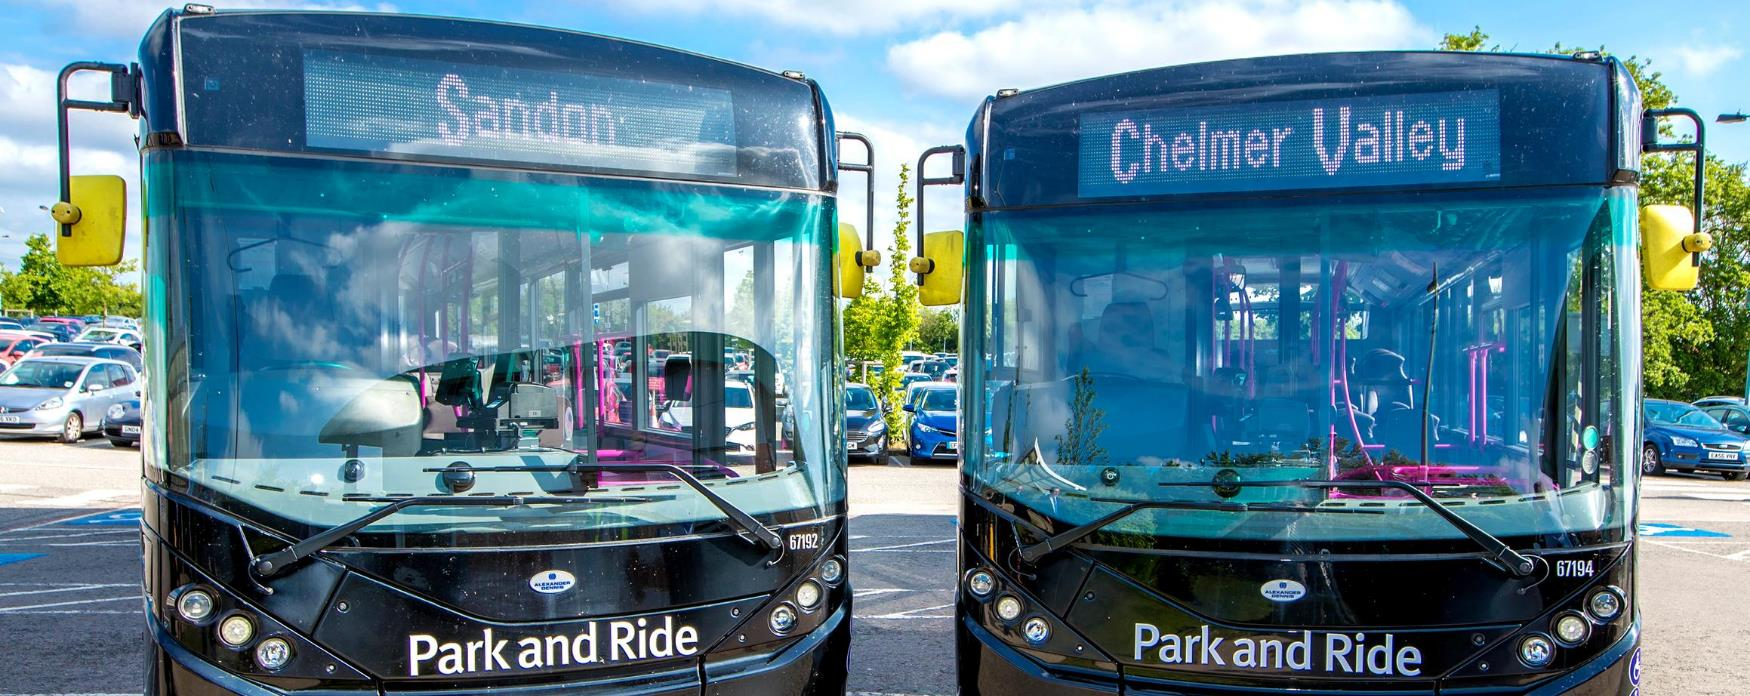 Two park and ride buses in Chelmsford